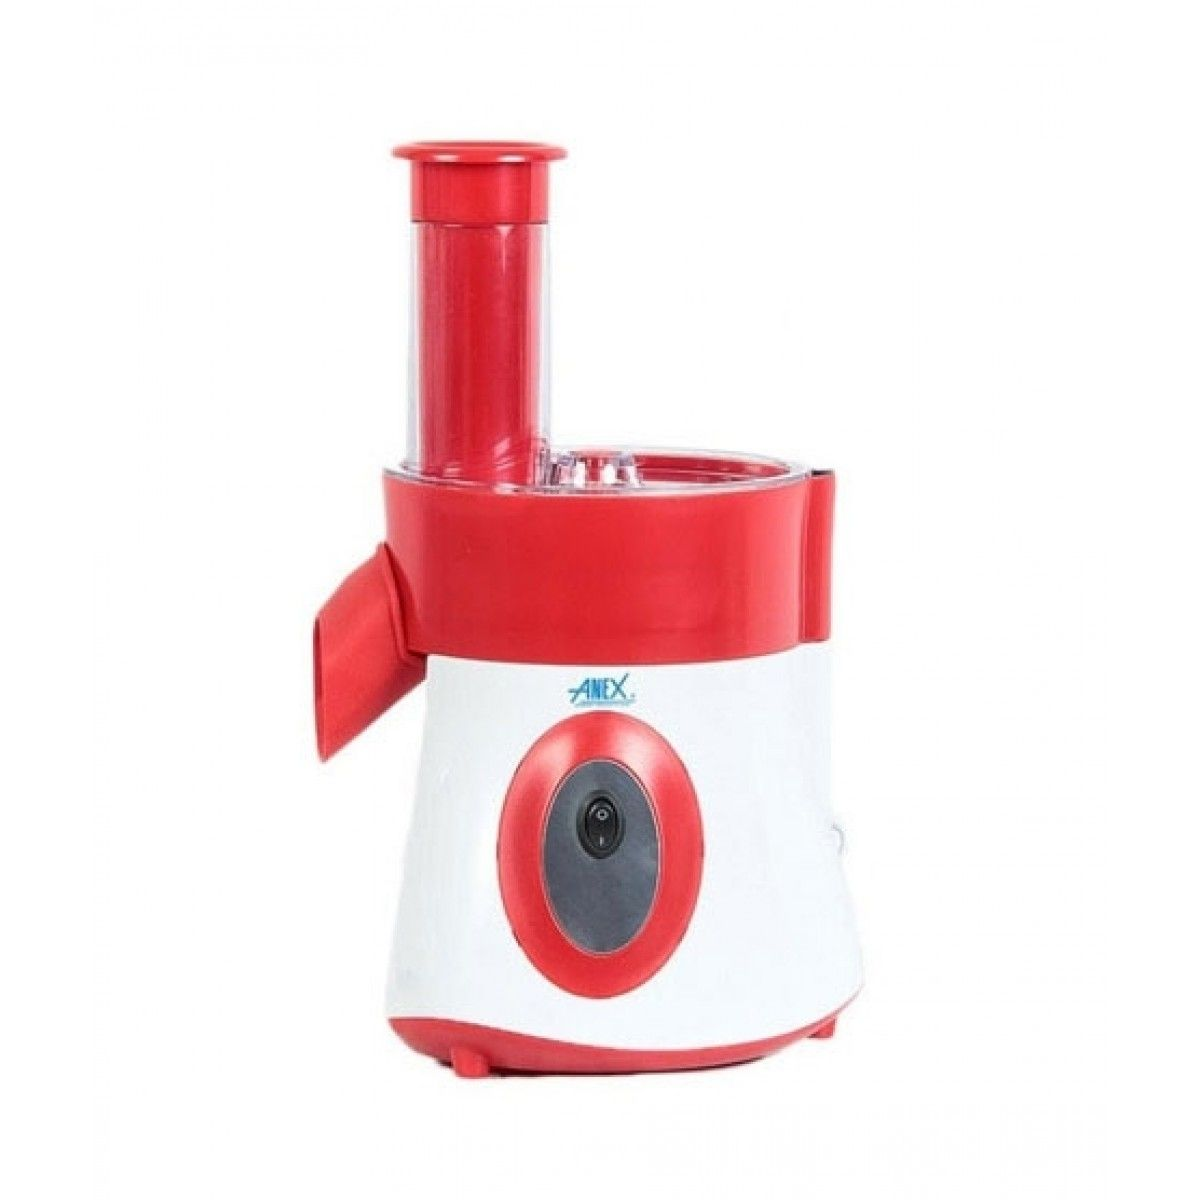 Anex Deluxe Food Chopper & Slicer AG-397